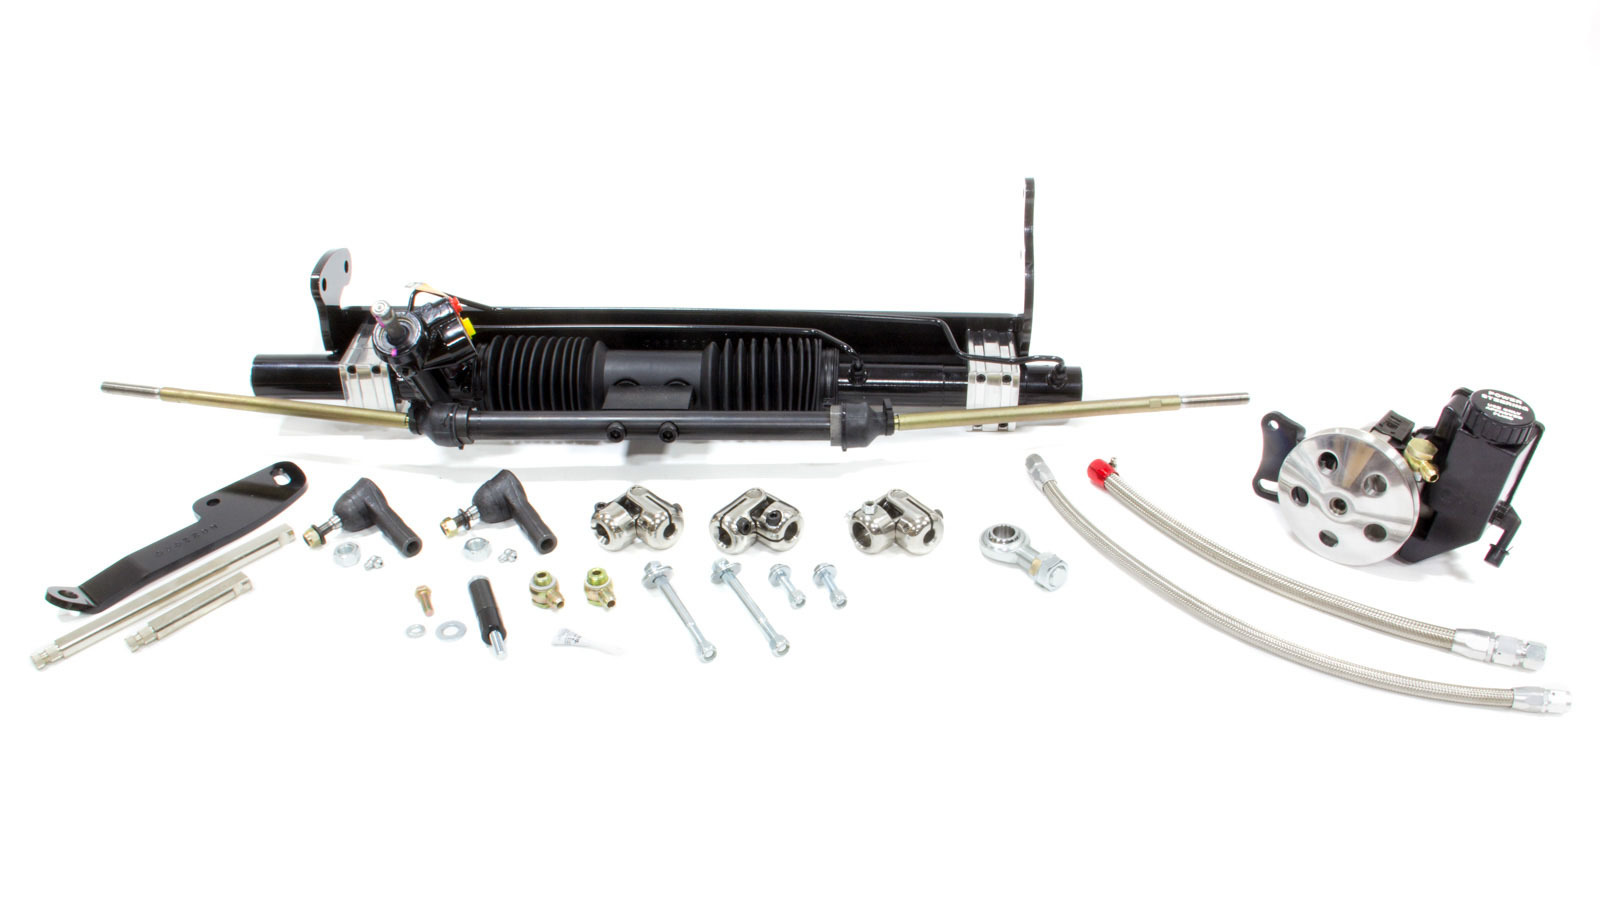 Unisteer Performance Products 8010740-01 Rack and Pinion, Power, Aluminum, Black Powder Coat, GM A-Body 1968-72, Kit